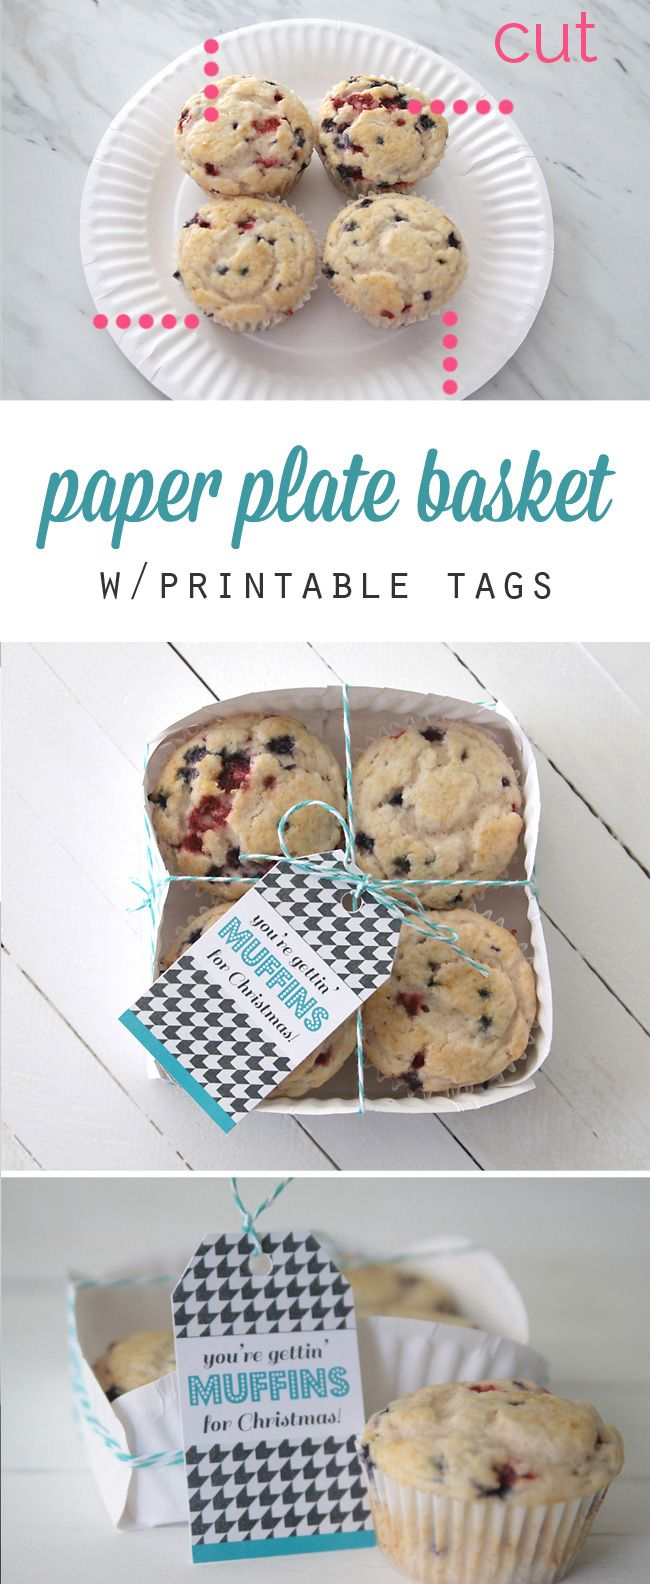 Make a cute treat basket from a paper plate Bake sale